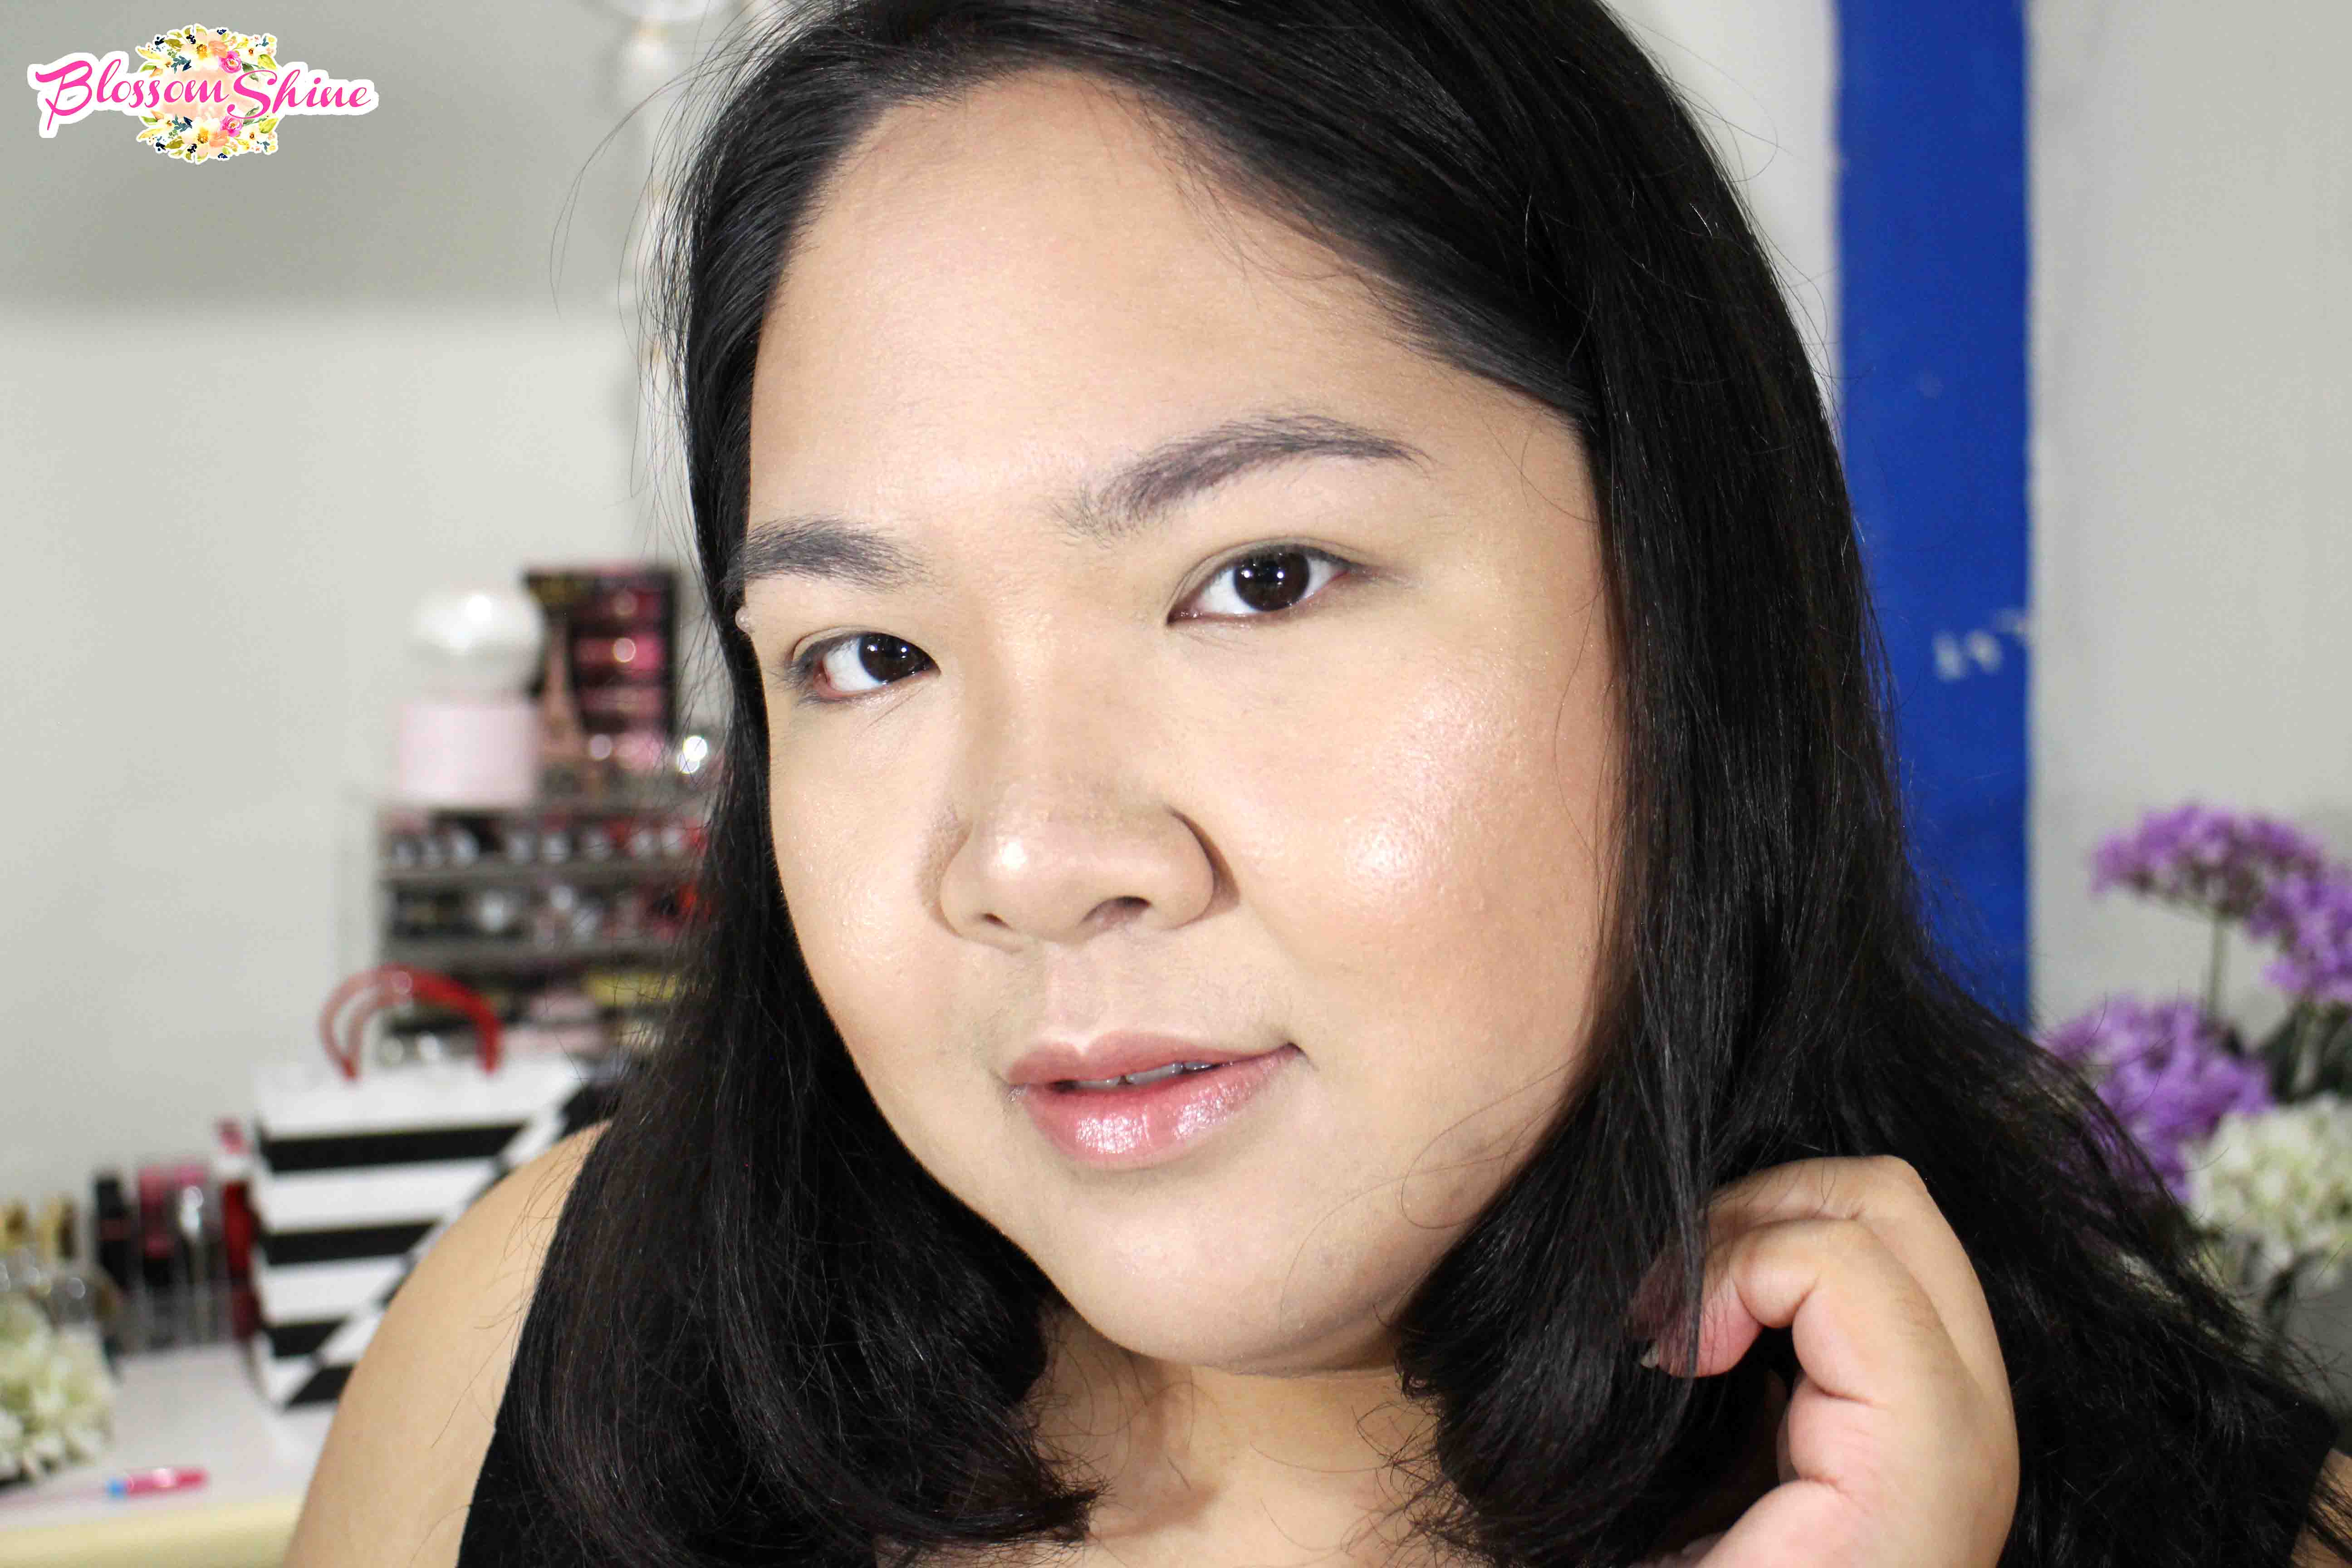 Glossy Makeup Tutorial (Makeup Collaboration)